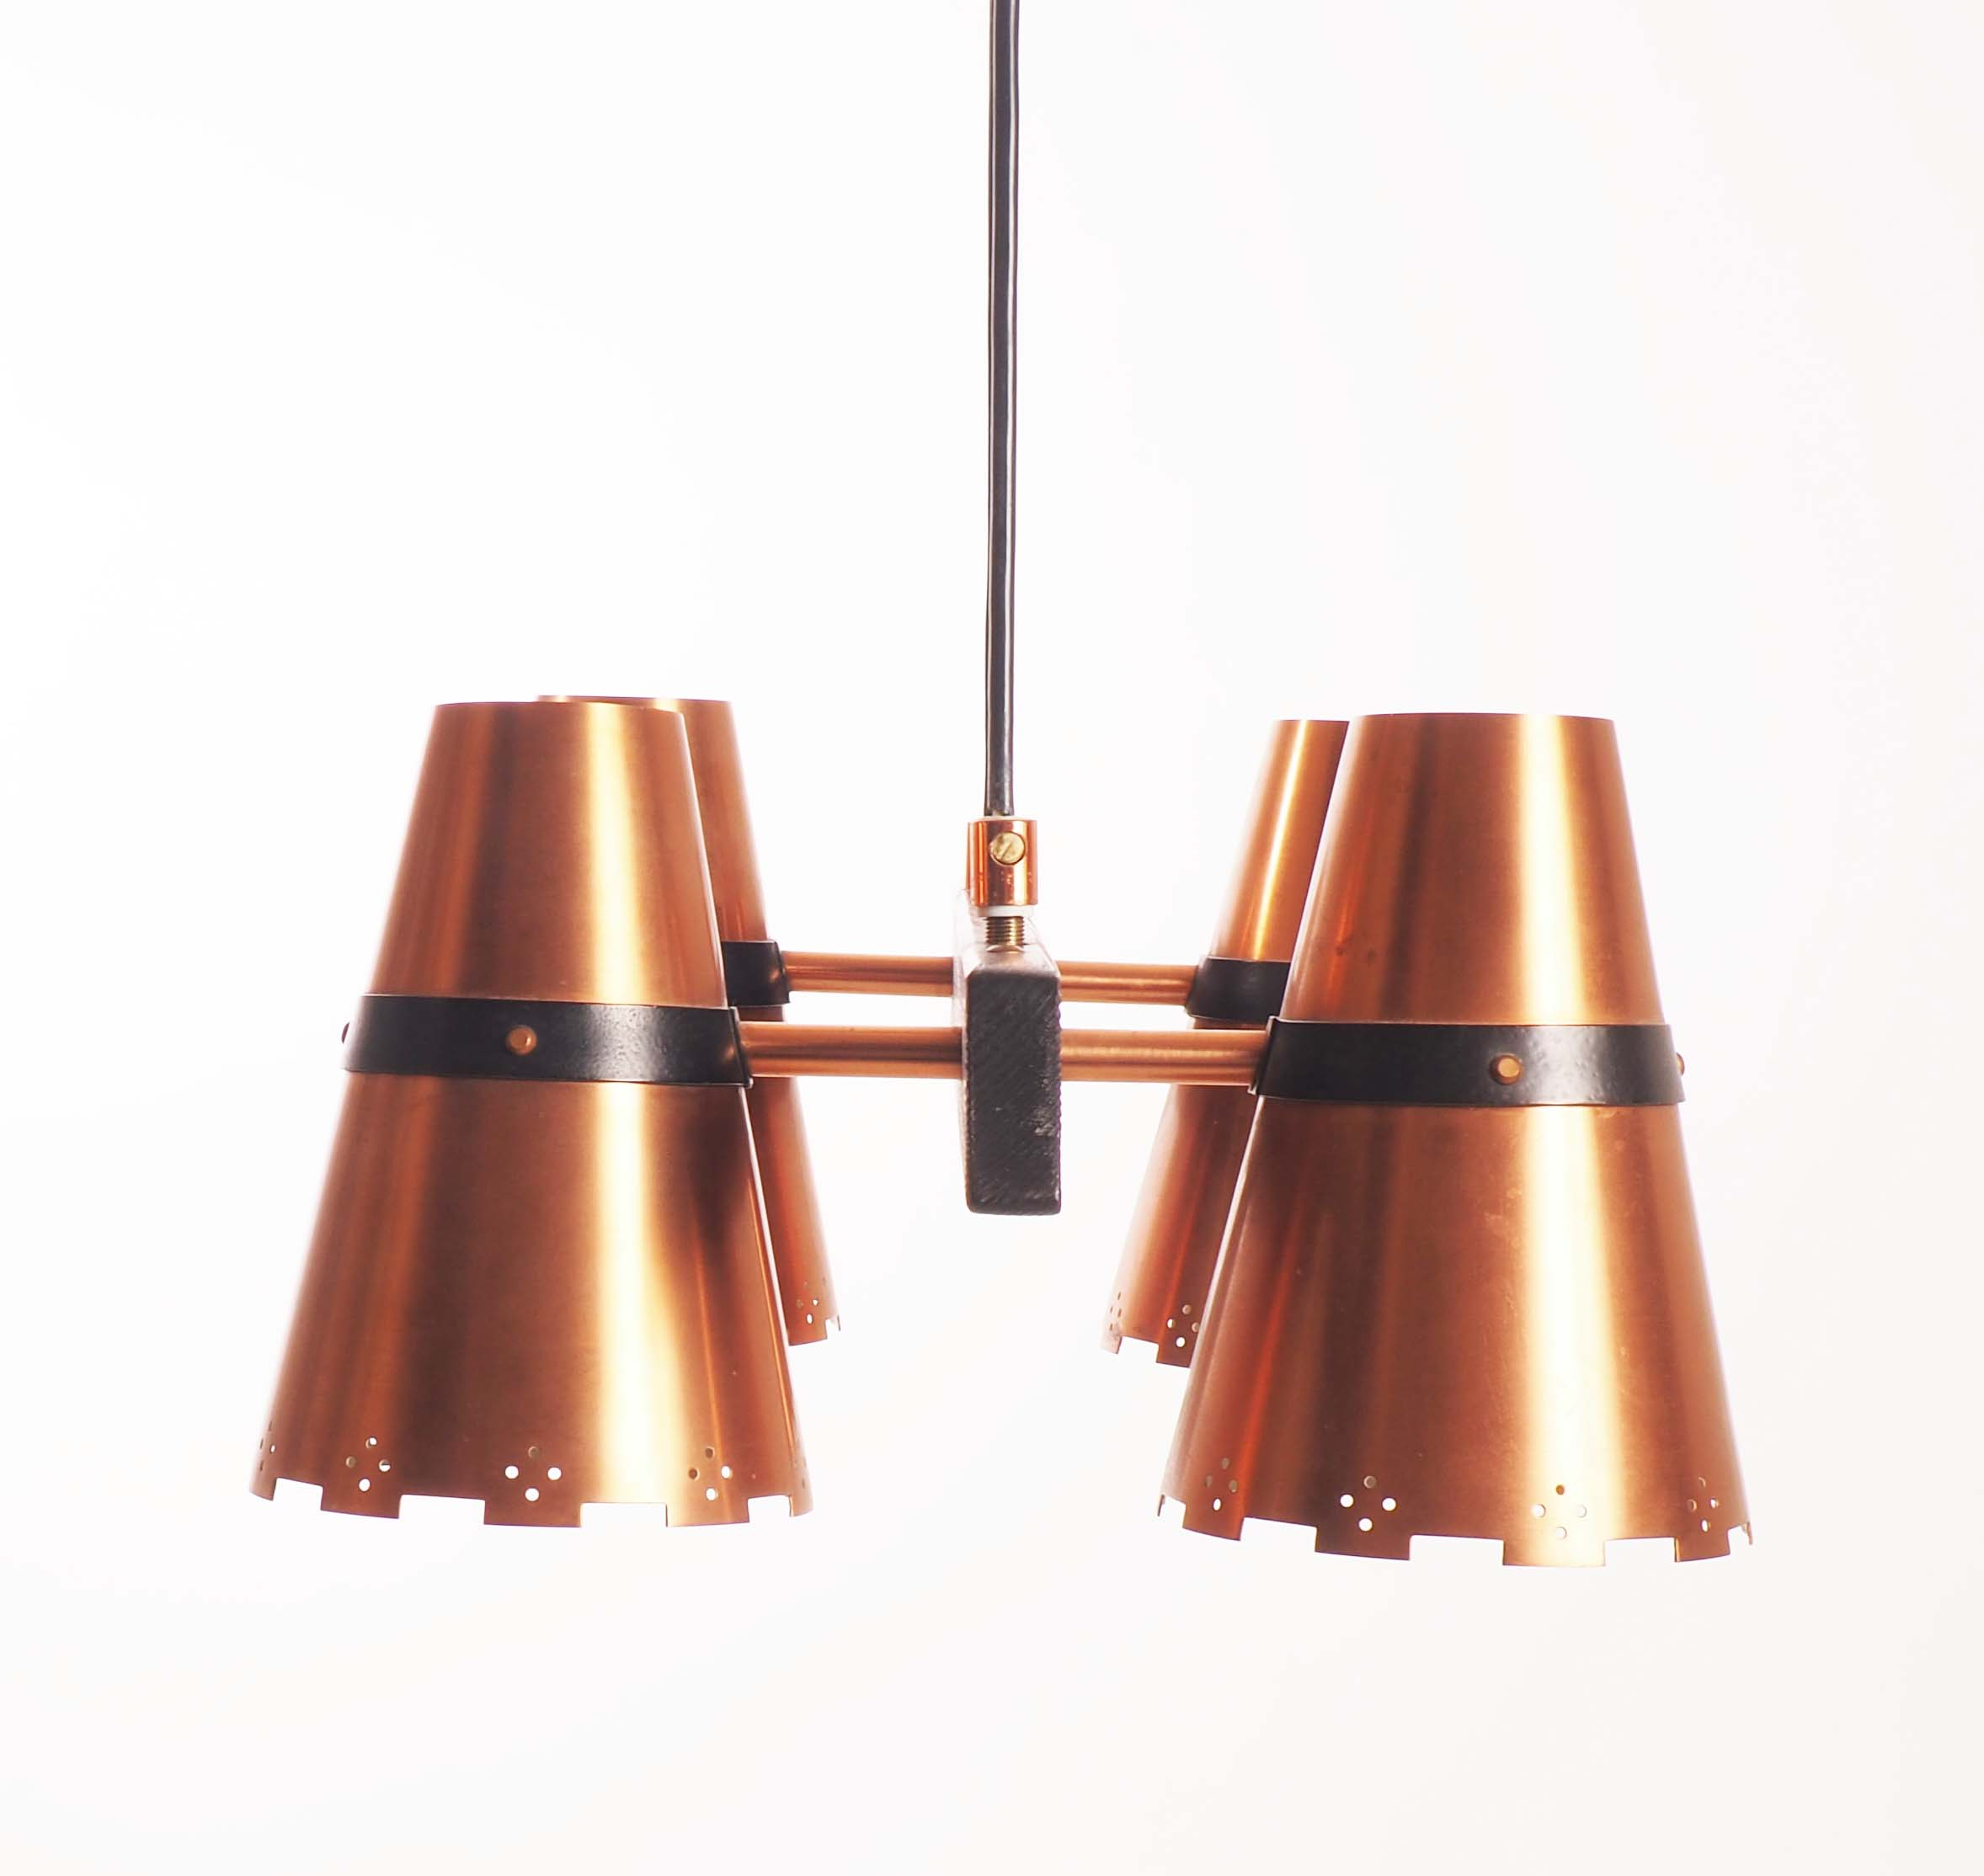 Ceiling lamp in copper